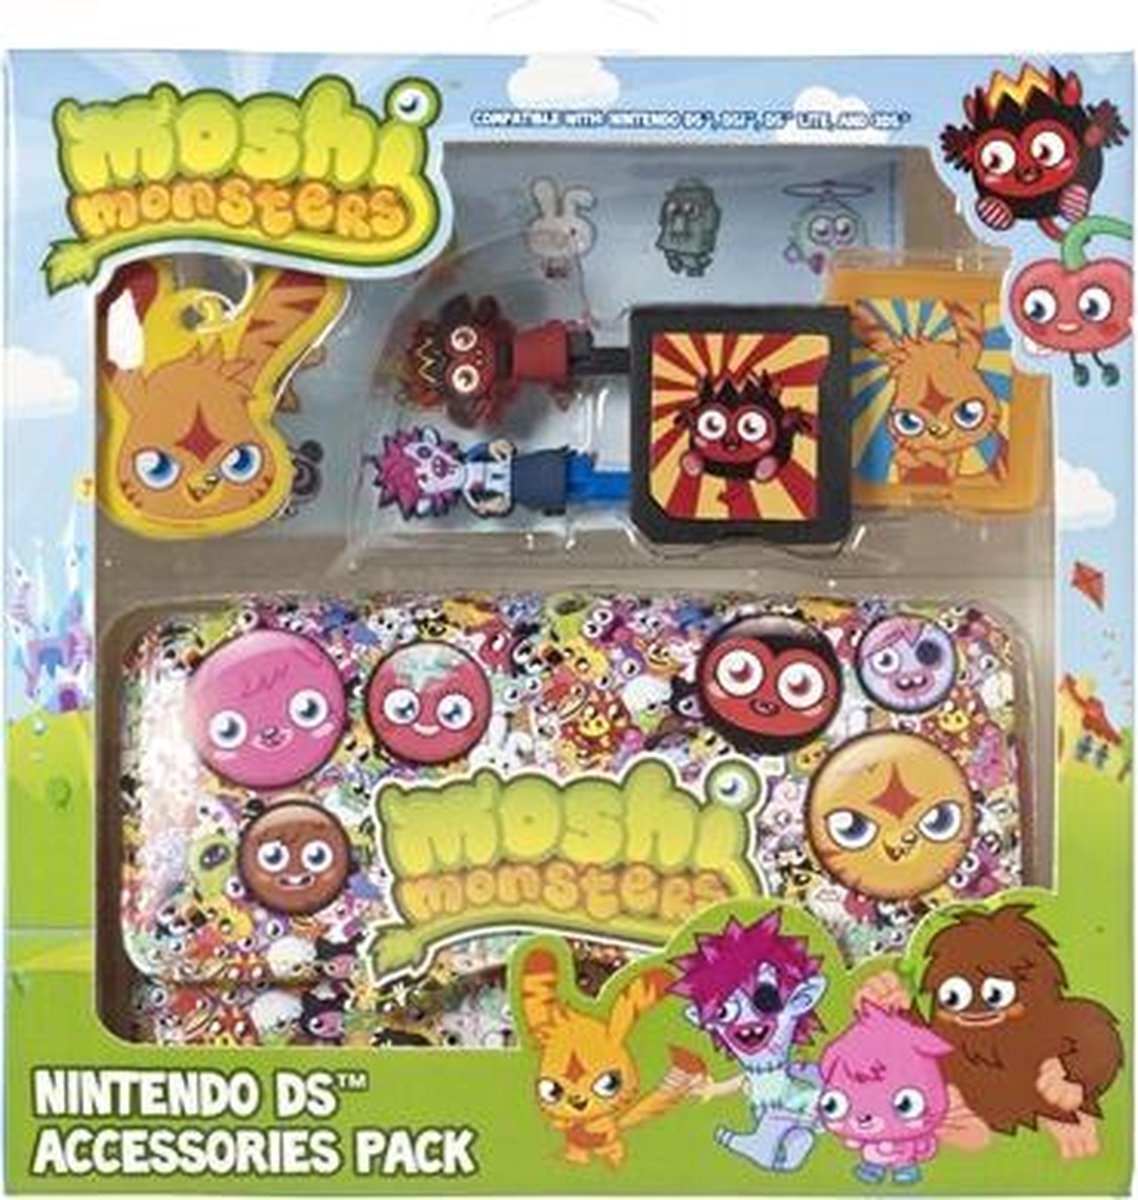 Moshi Monsters Game Pack Boy 3Ds (Mind Candy) - Gameworld